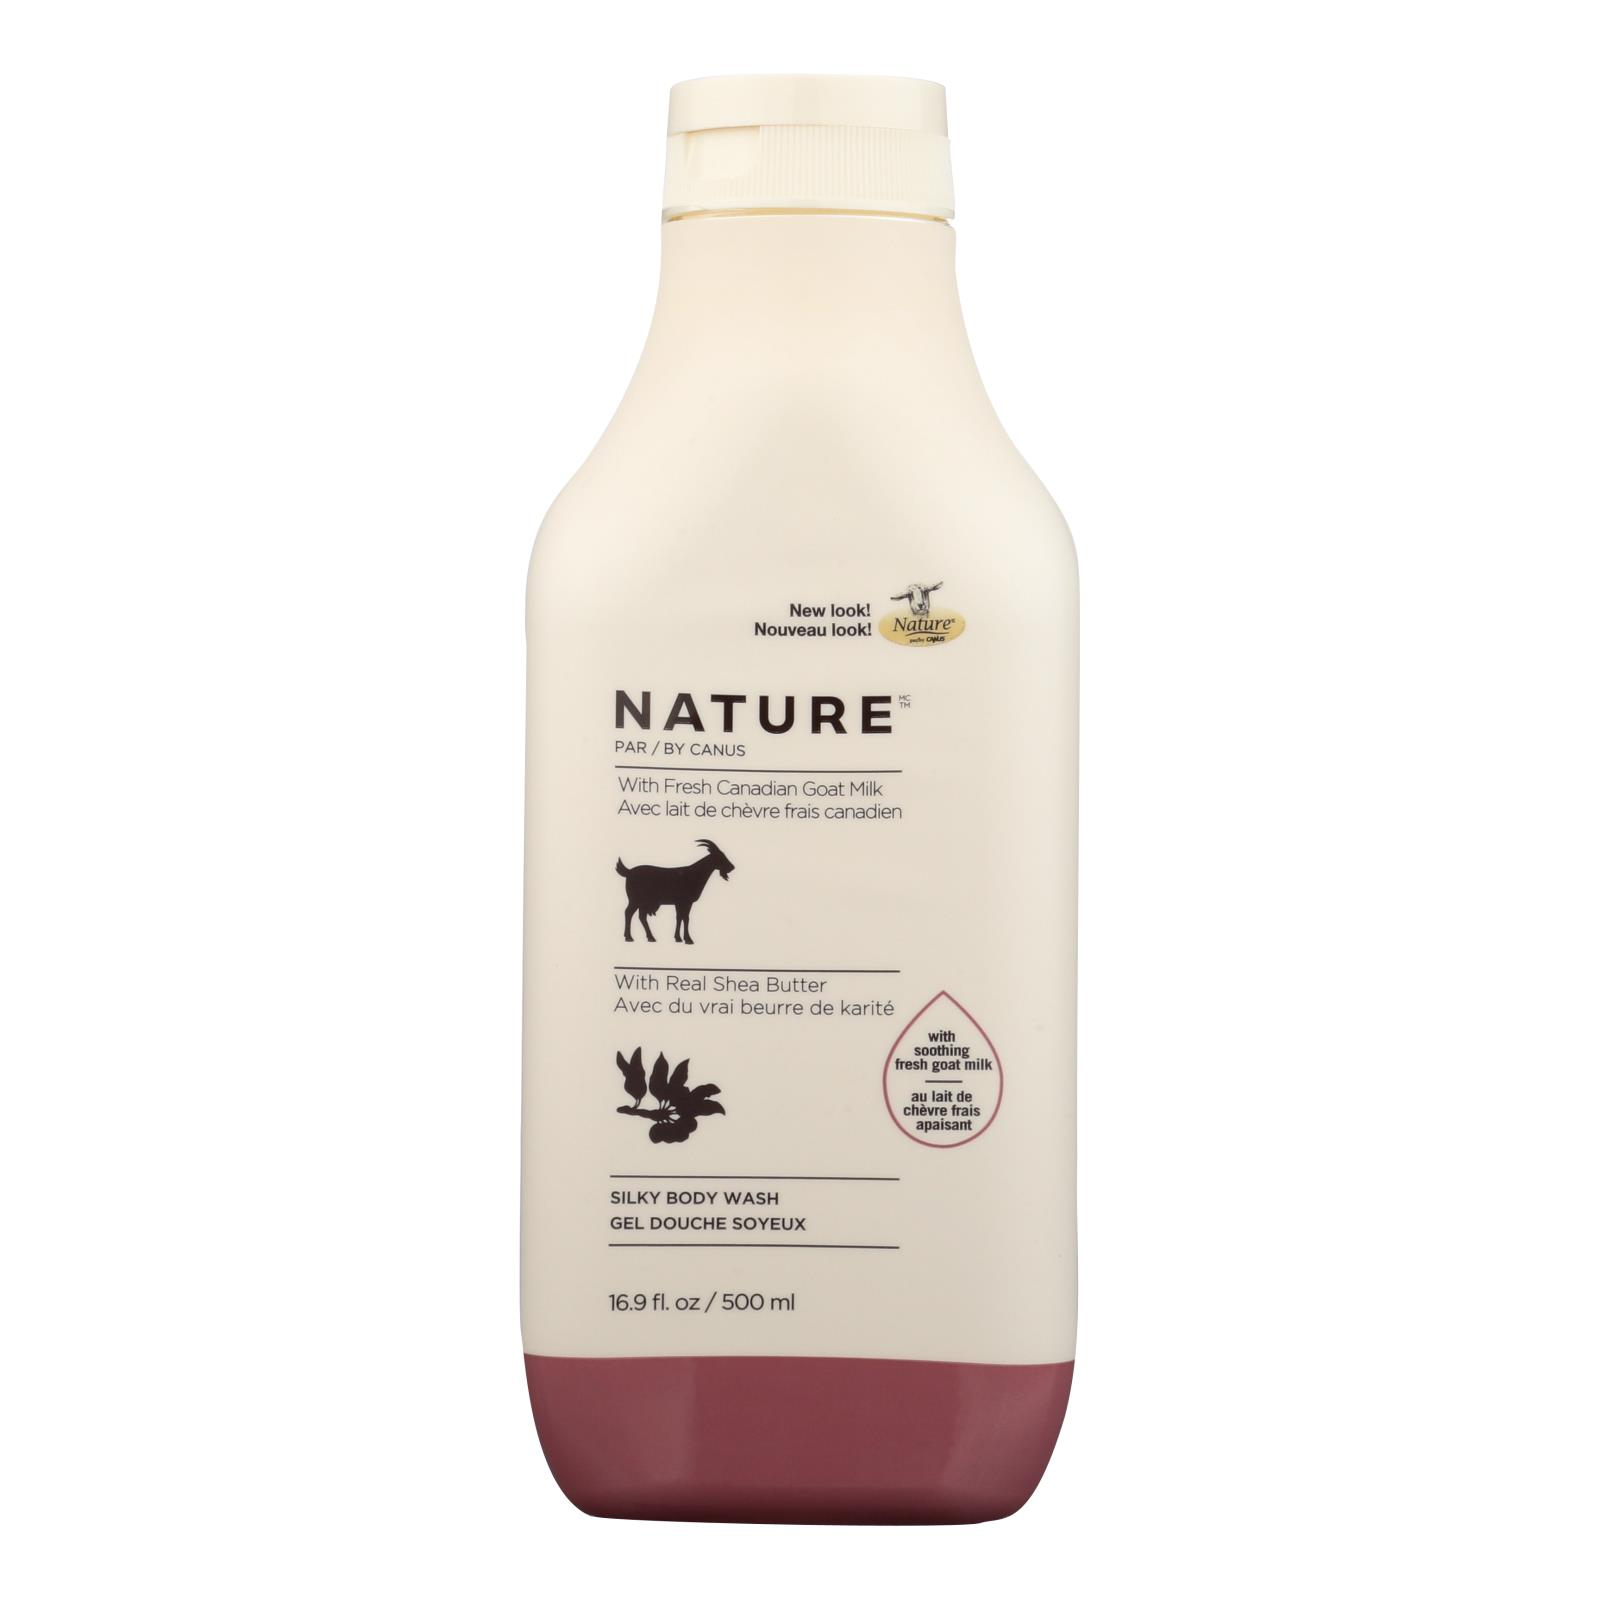 Nature By Canus - Nature Gt Milk Body Wh Shea - 1 Each - 16.9 OZ